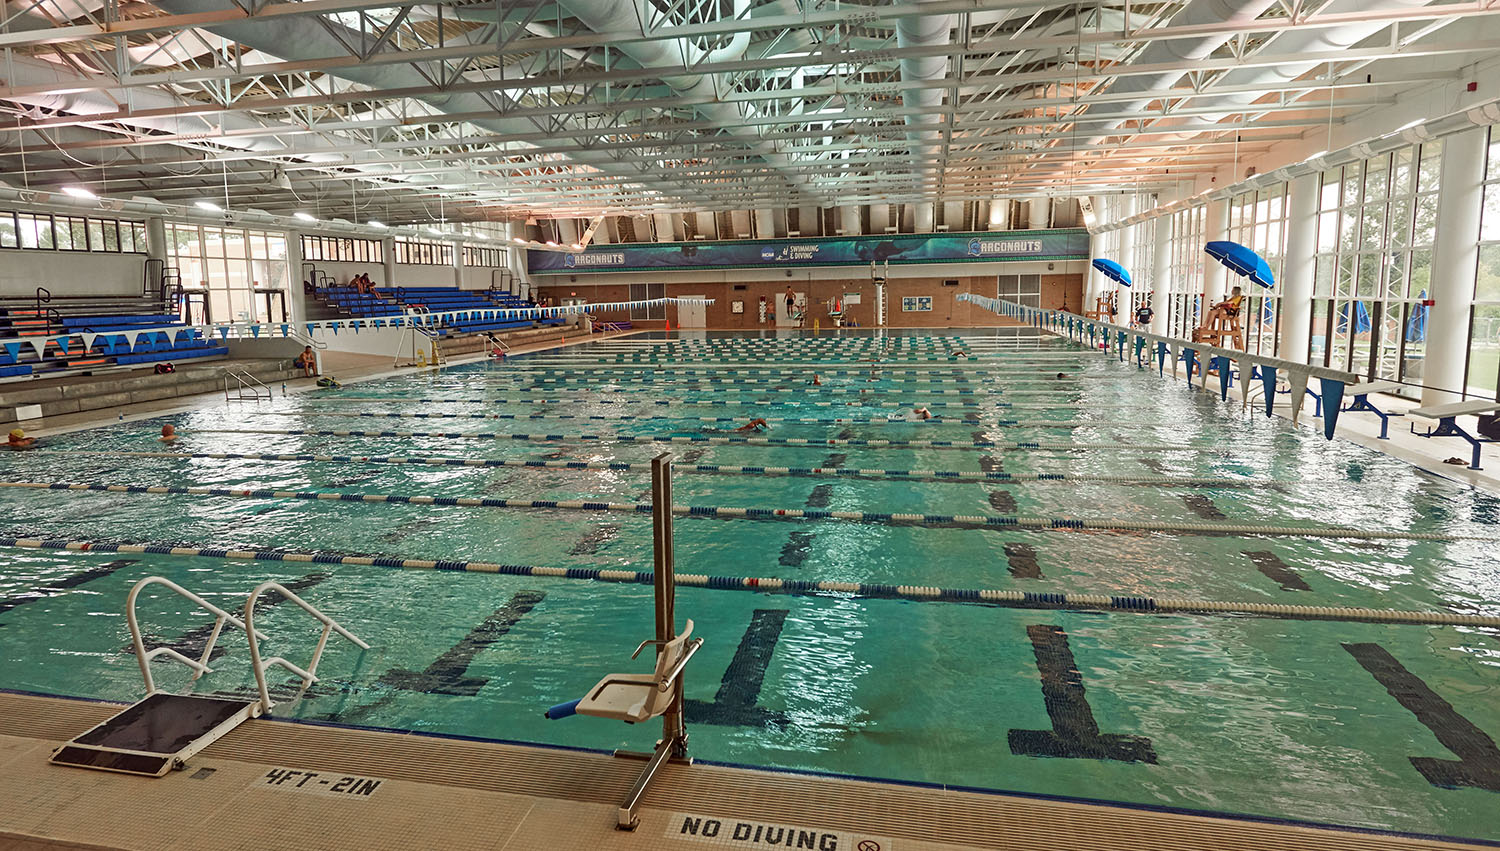 uwf aquatic center to host public expo and open house university of west florida newsroom